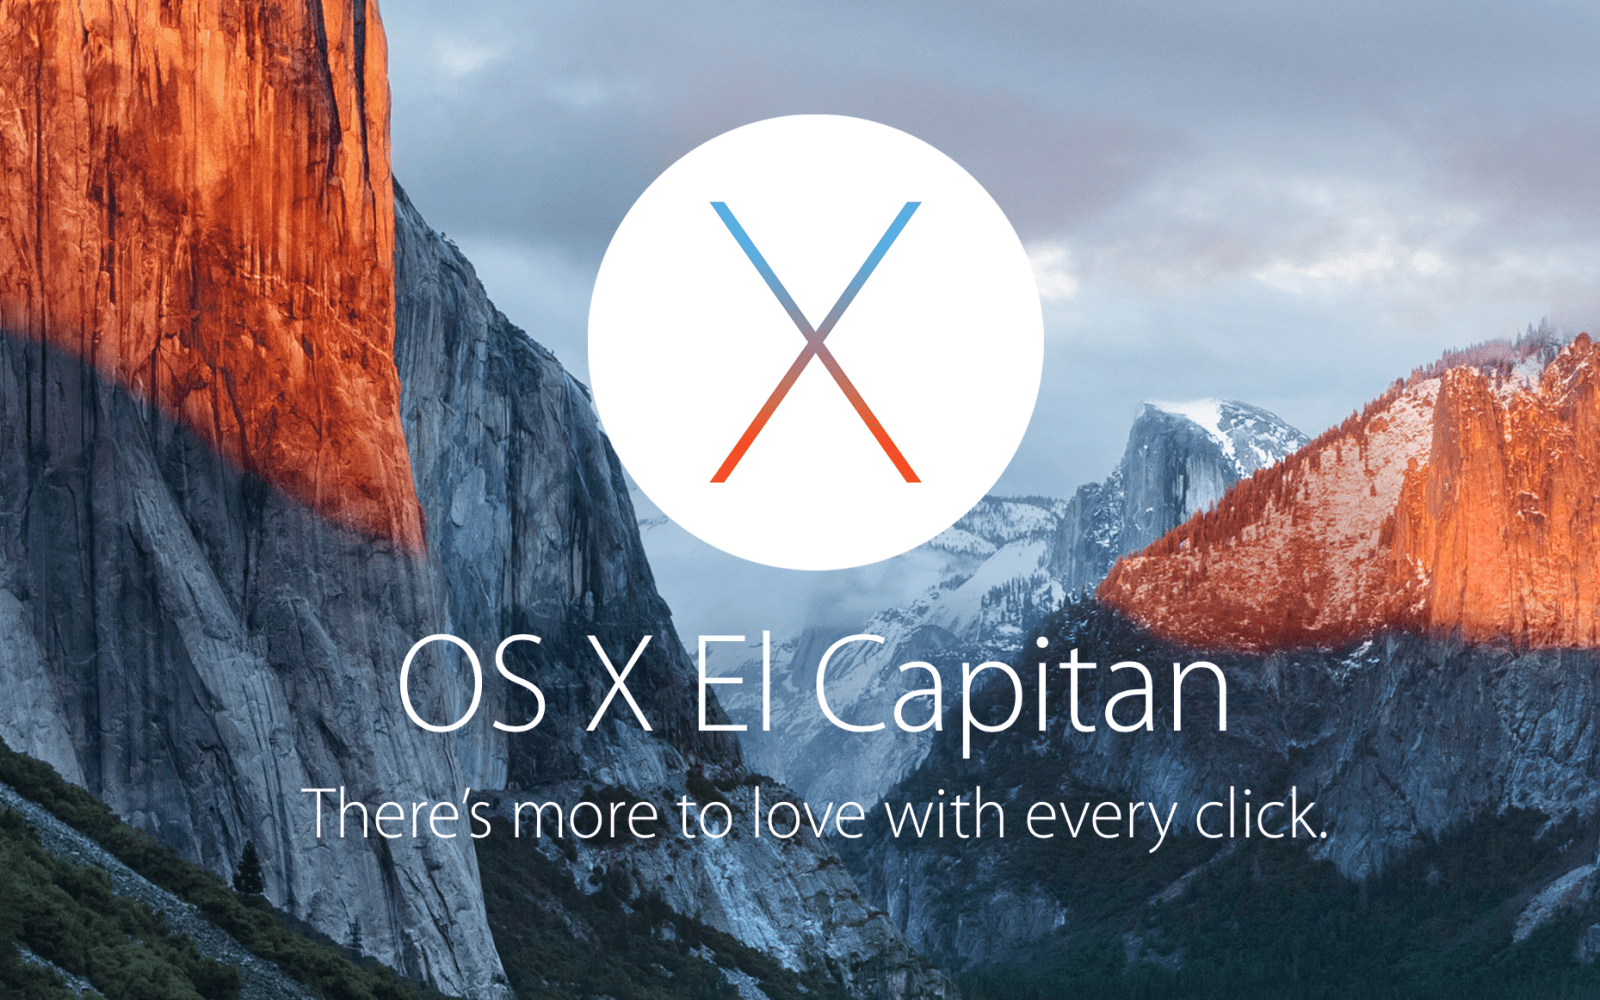 Apple releases OS X El Capitan, featuring full-screen Split View, new Notes, revamped Spotlight Search, Safari 9 and more